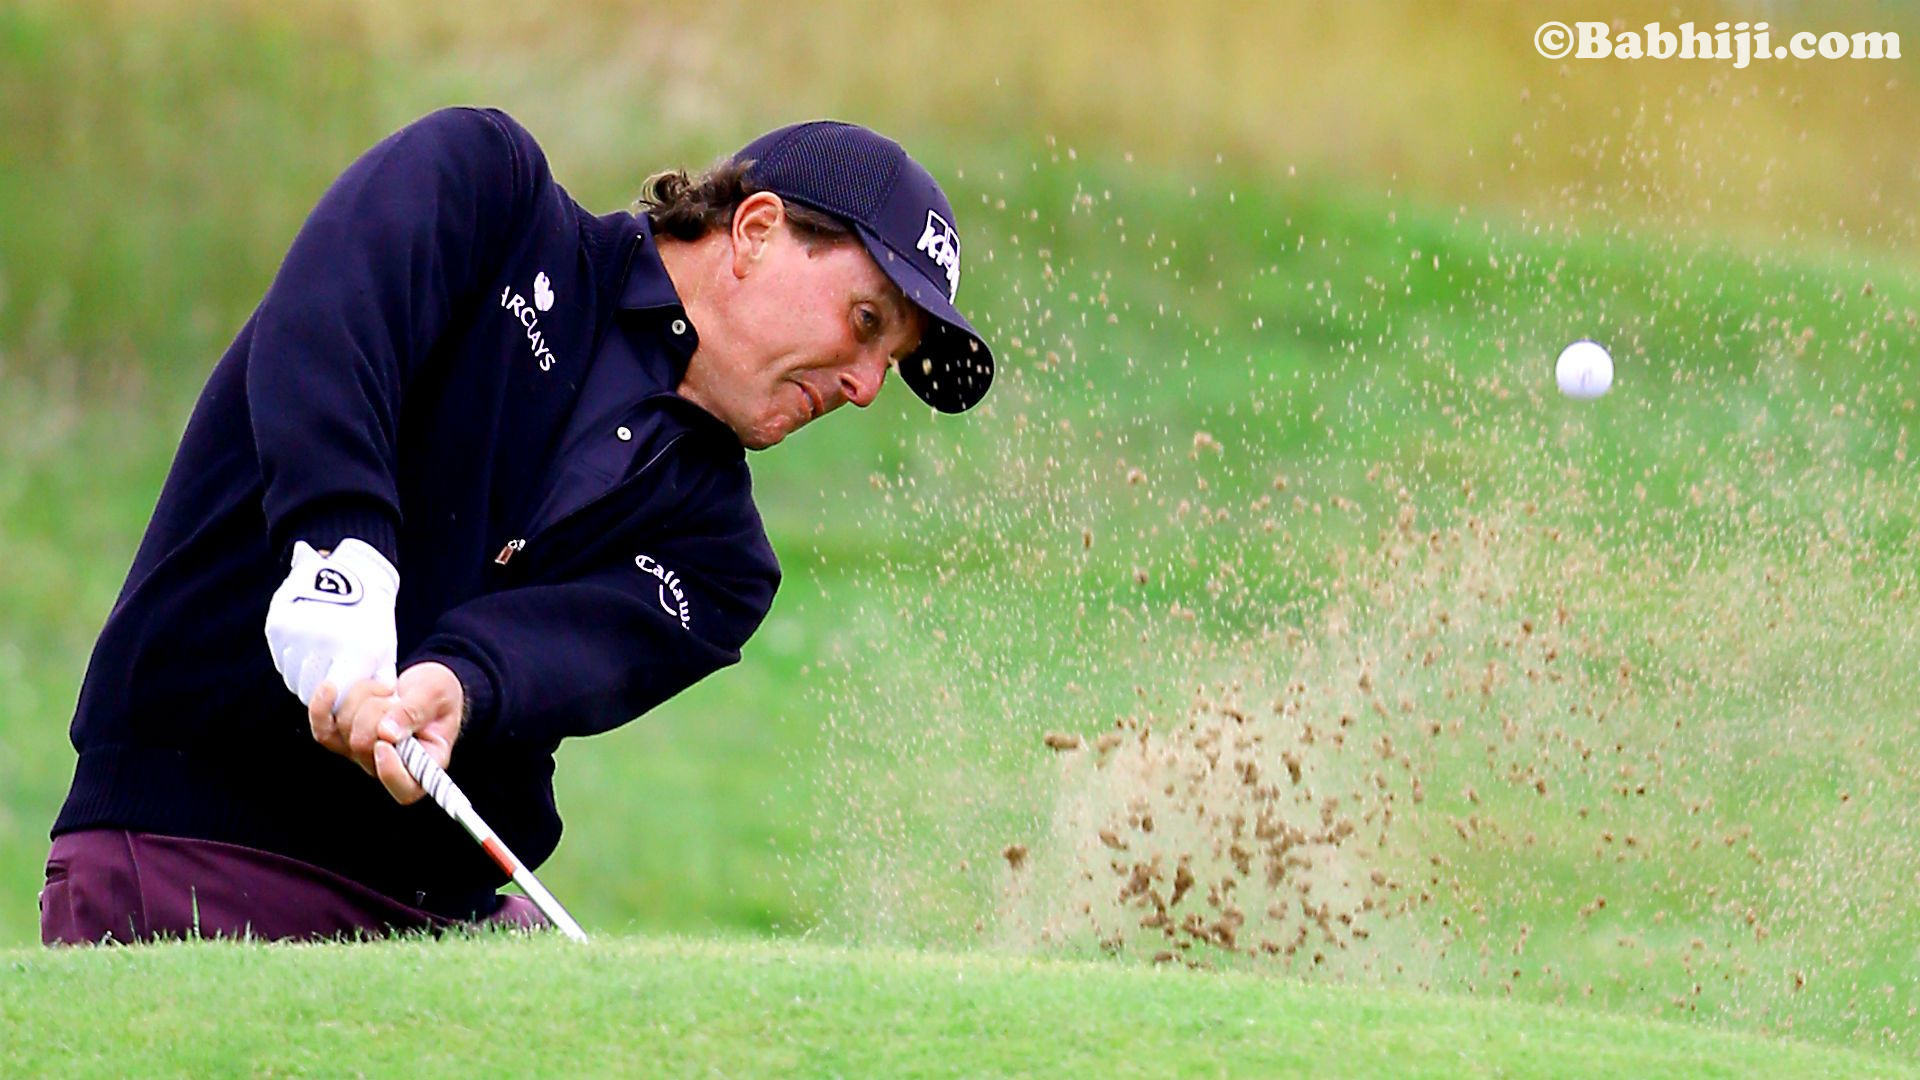 Phil Mickelson, Phil Mickelson Wallpaper, Phil Mickelson Photo, Phil Mickelson Images